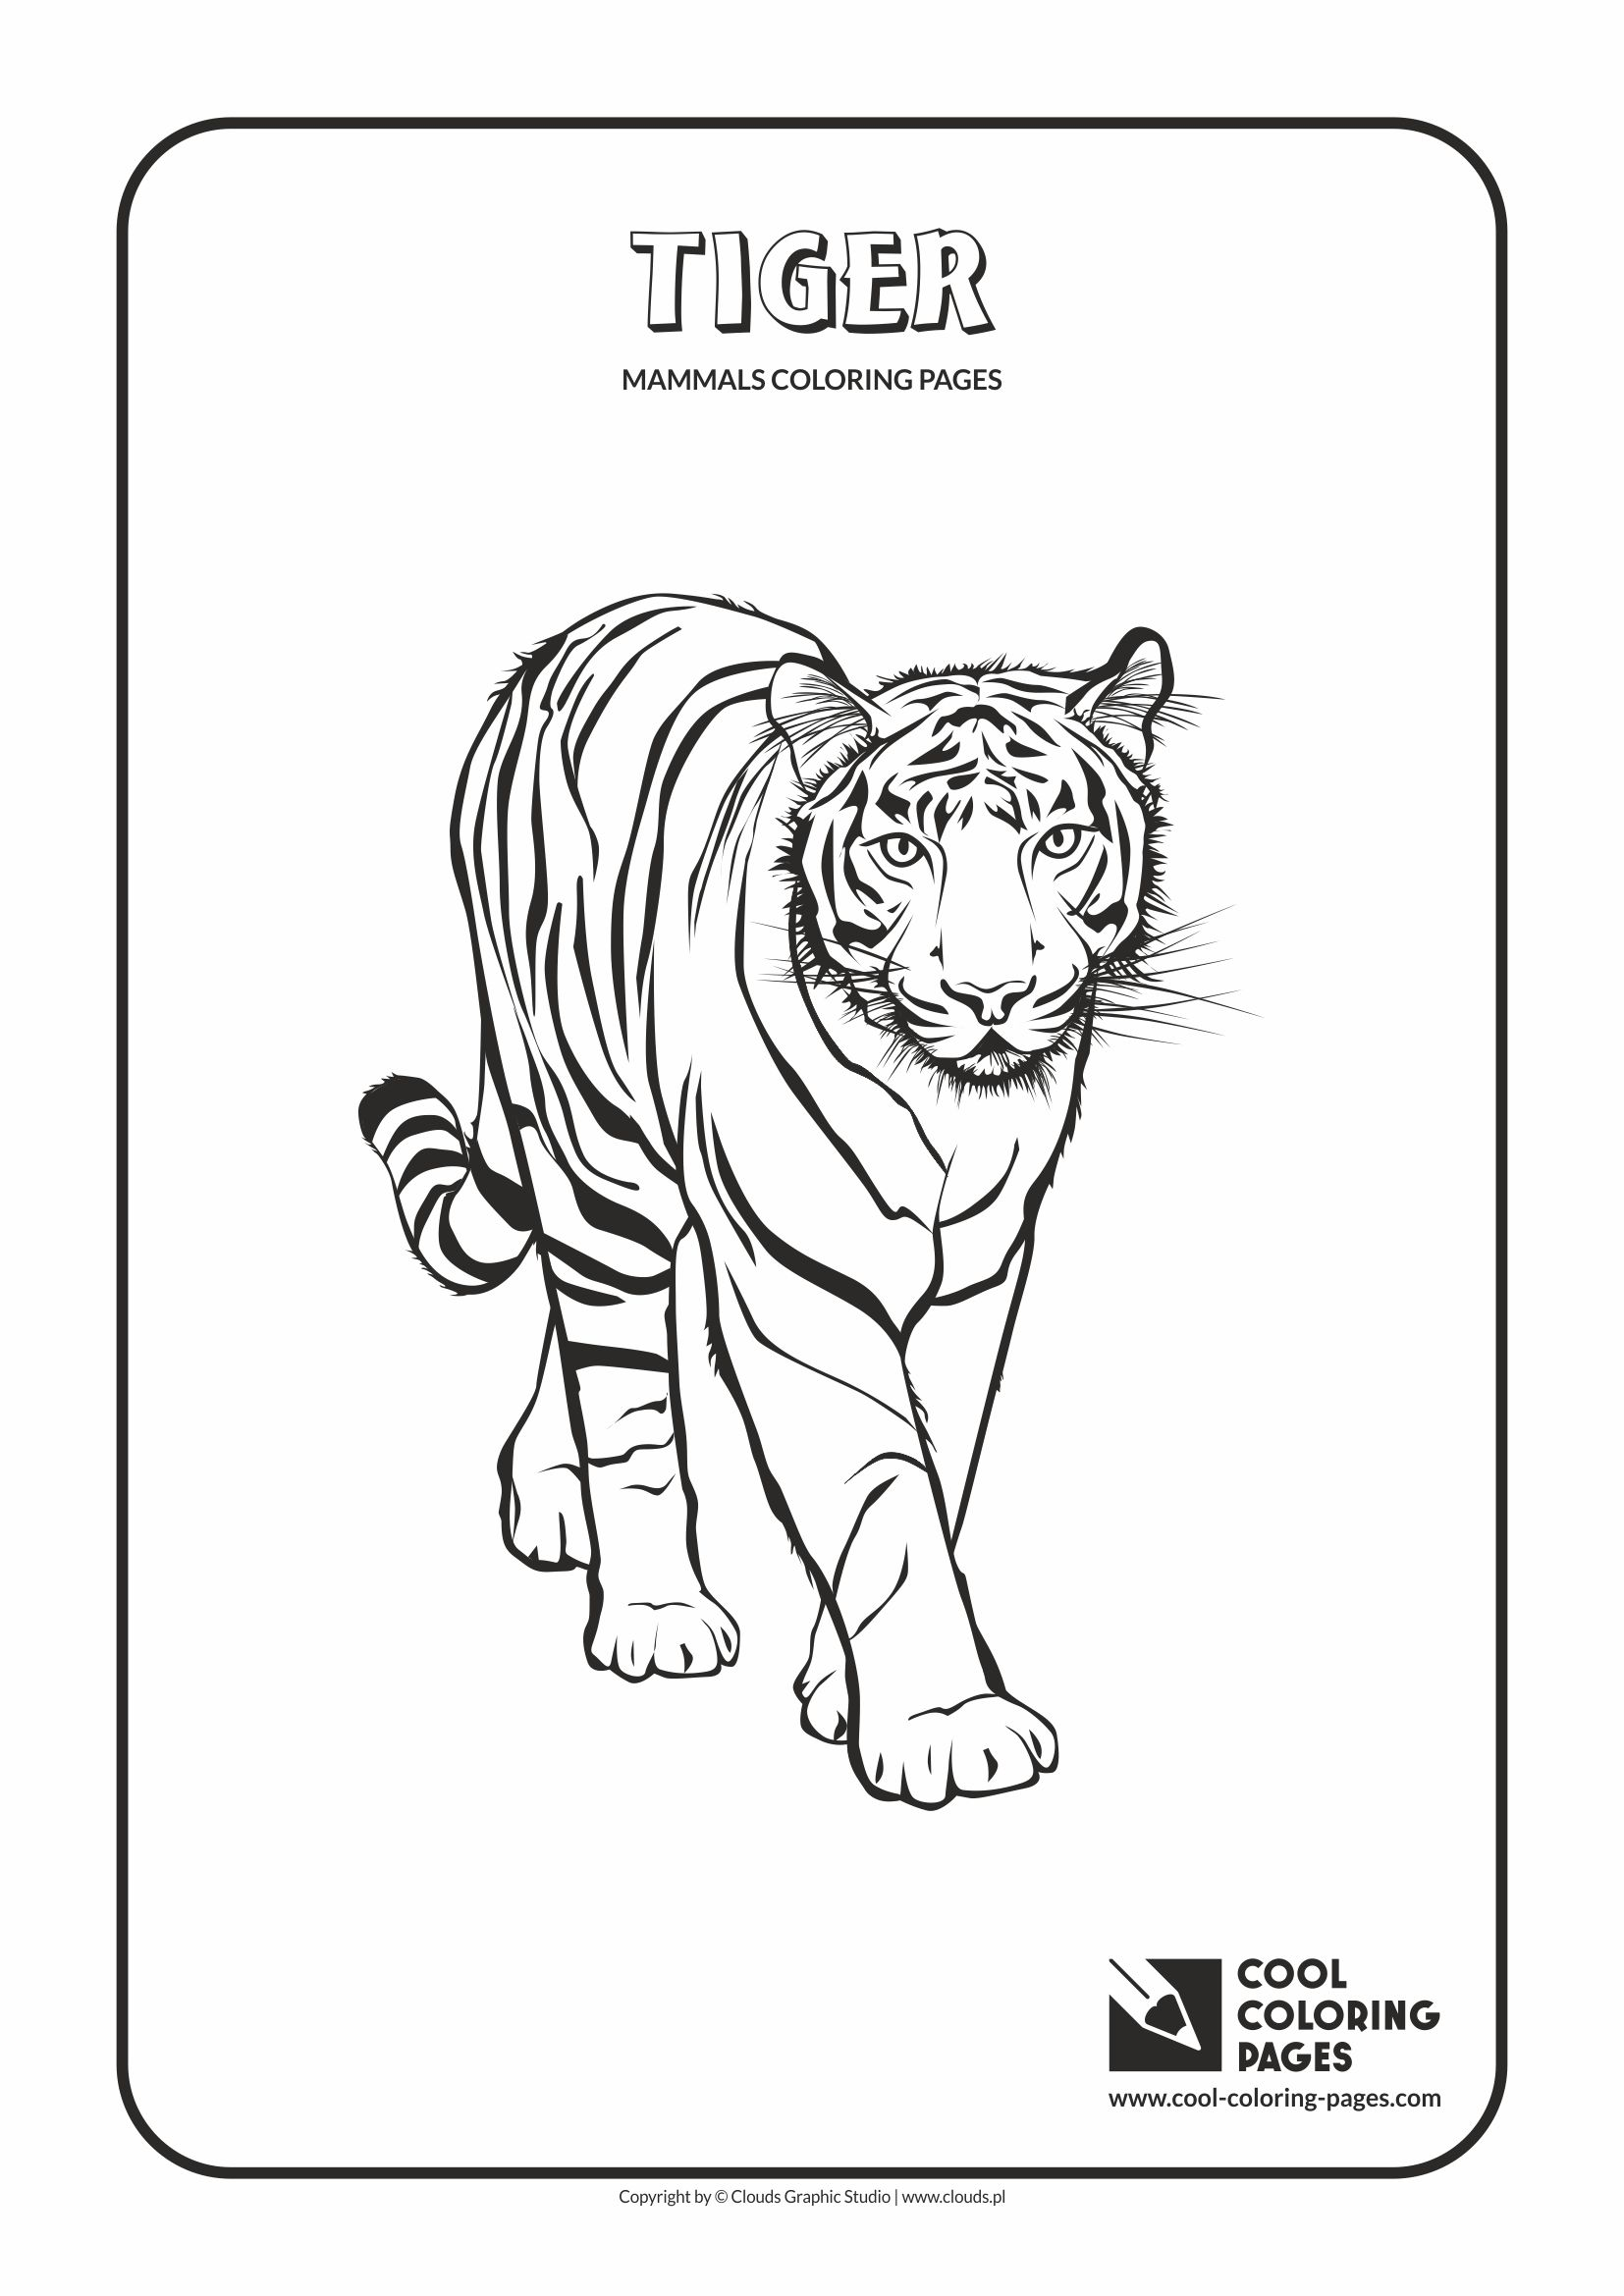 Cool Coloring Pages Mammals coloring